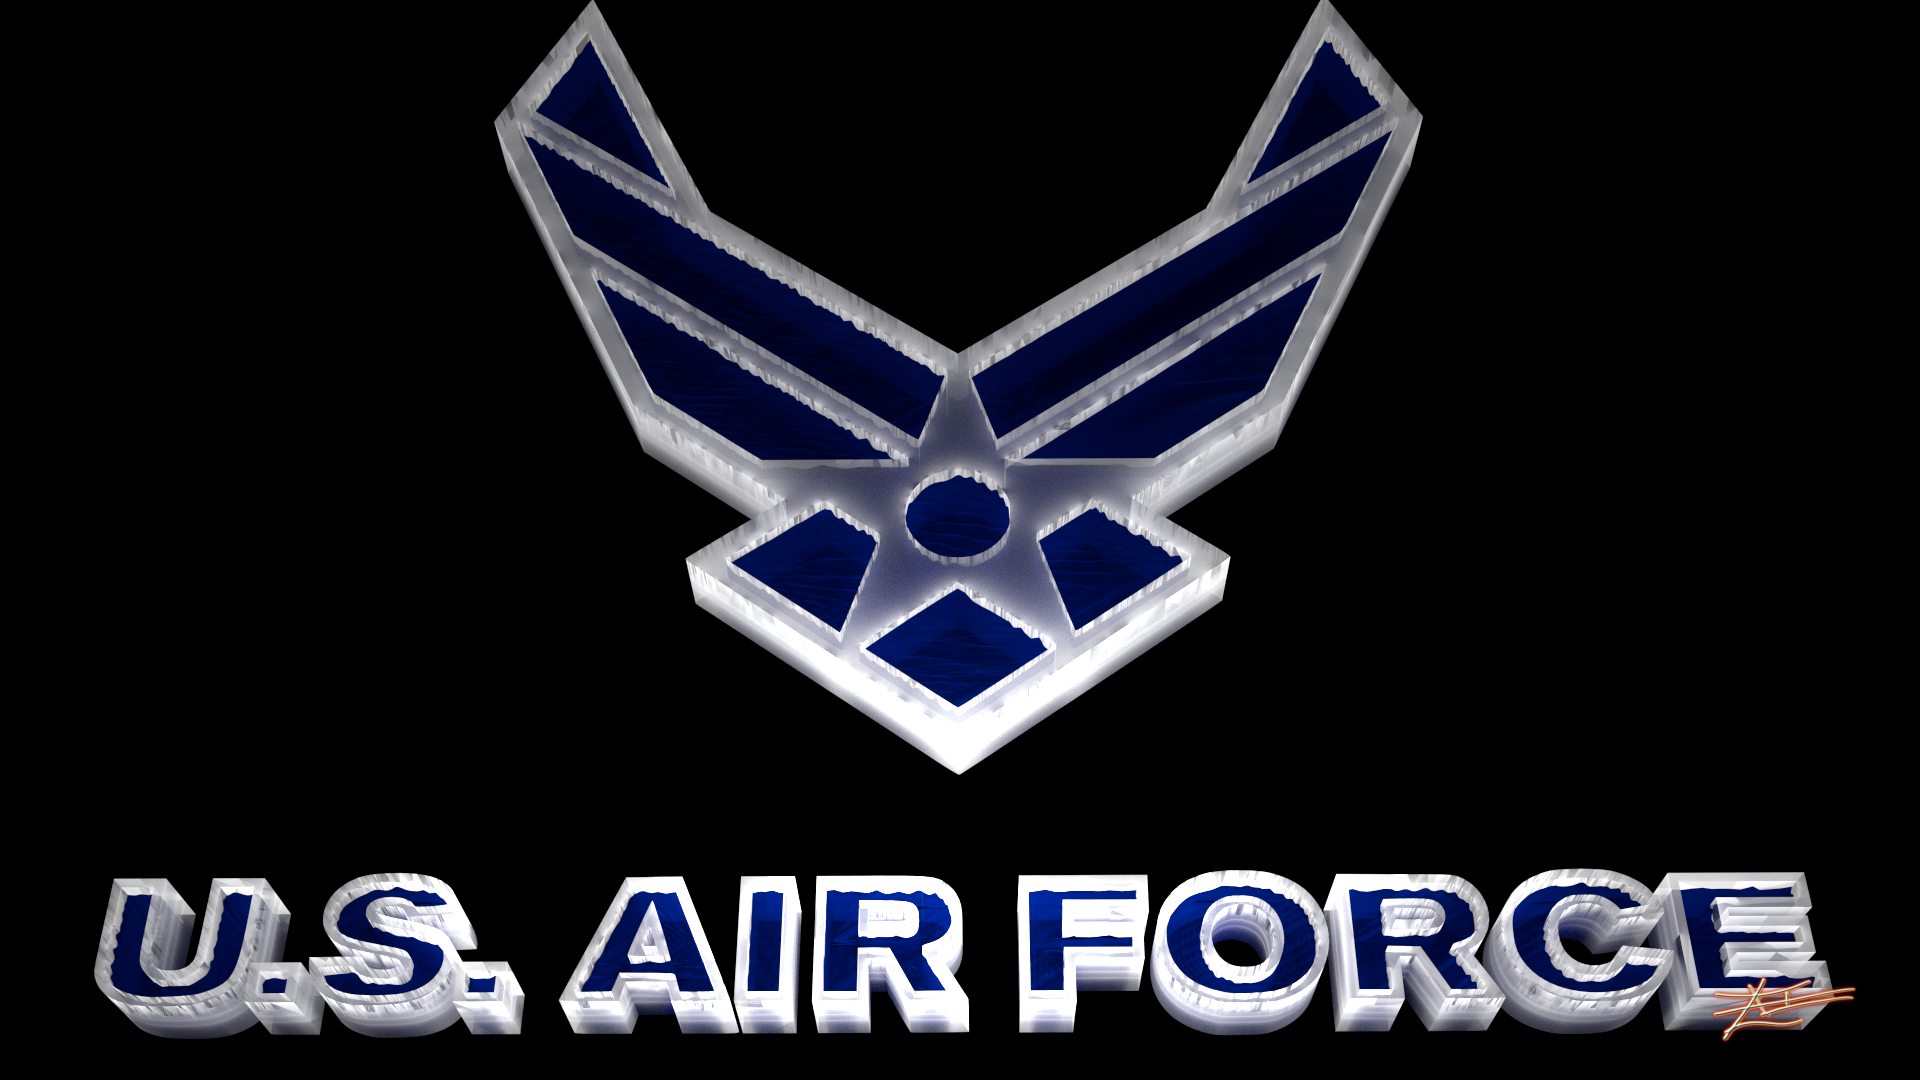 Air force logo water and ice by zroxorz on deviantart air force logo water and ice by zroxorz voltagebd Images